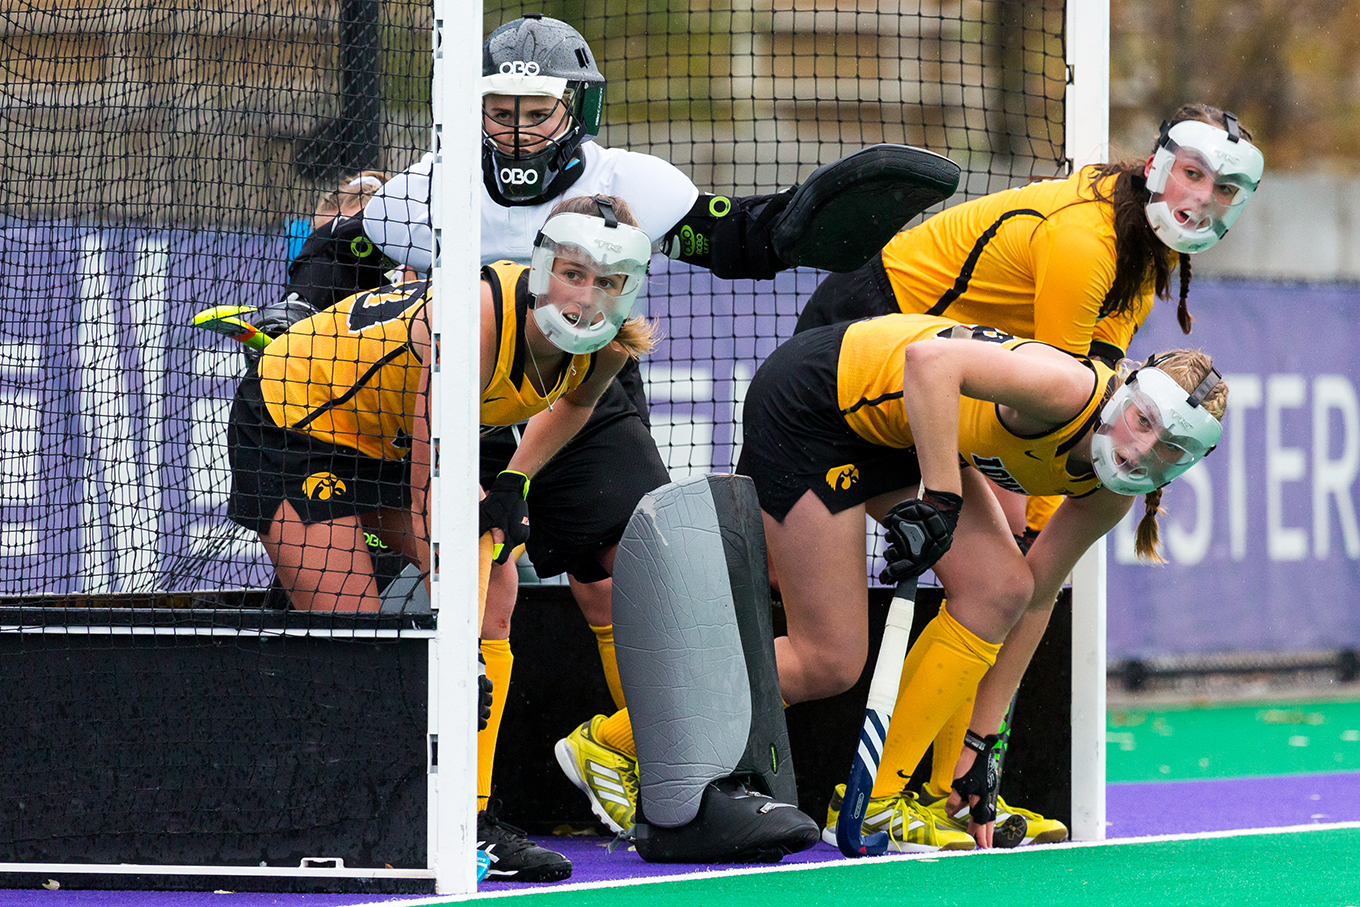 Iowa players stand in the goal to defend a penalty corner during the Championship Game in the Big Ten Field Hockey Tournament at Lakeside Field in Evanston, IL on Sunday, Nov. 3, 2018. The no. 2 ranked Terrapins defeated the no. 8 ranked Hawkeyes 2-1.